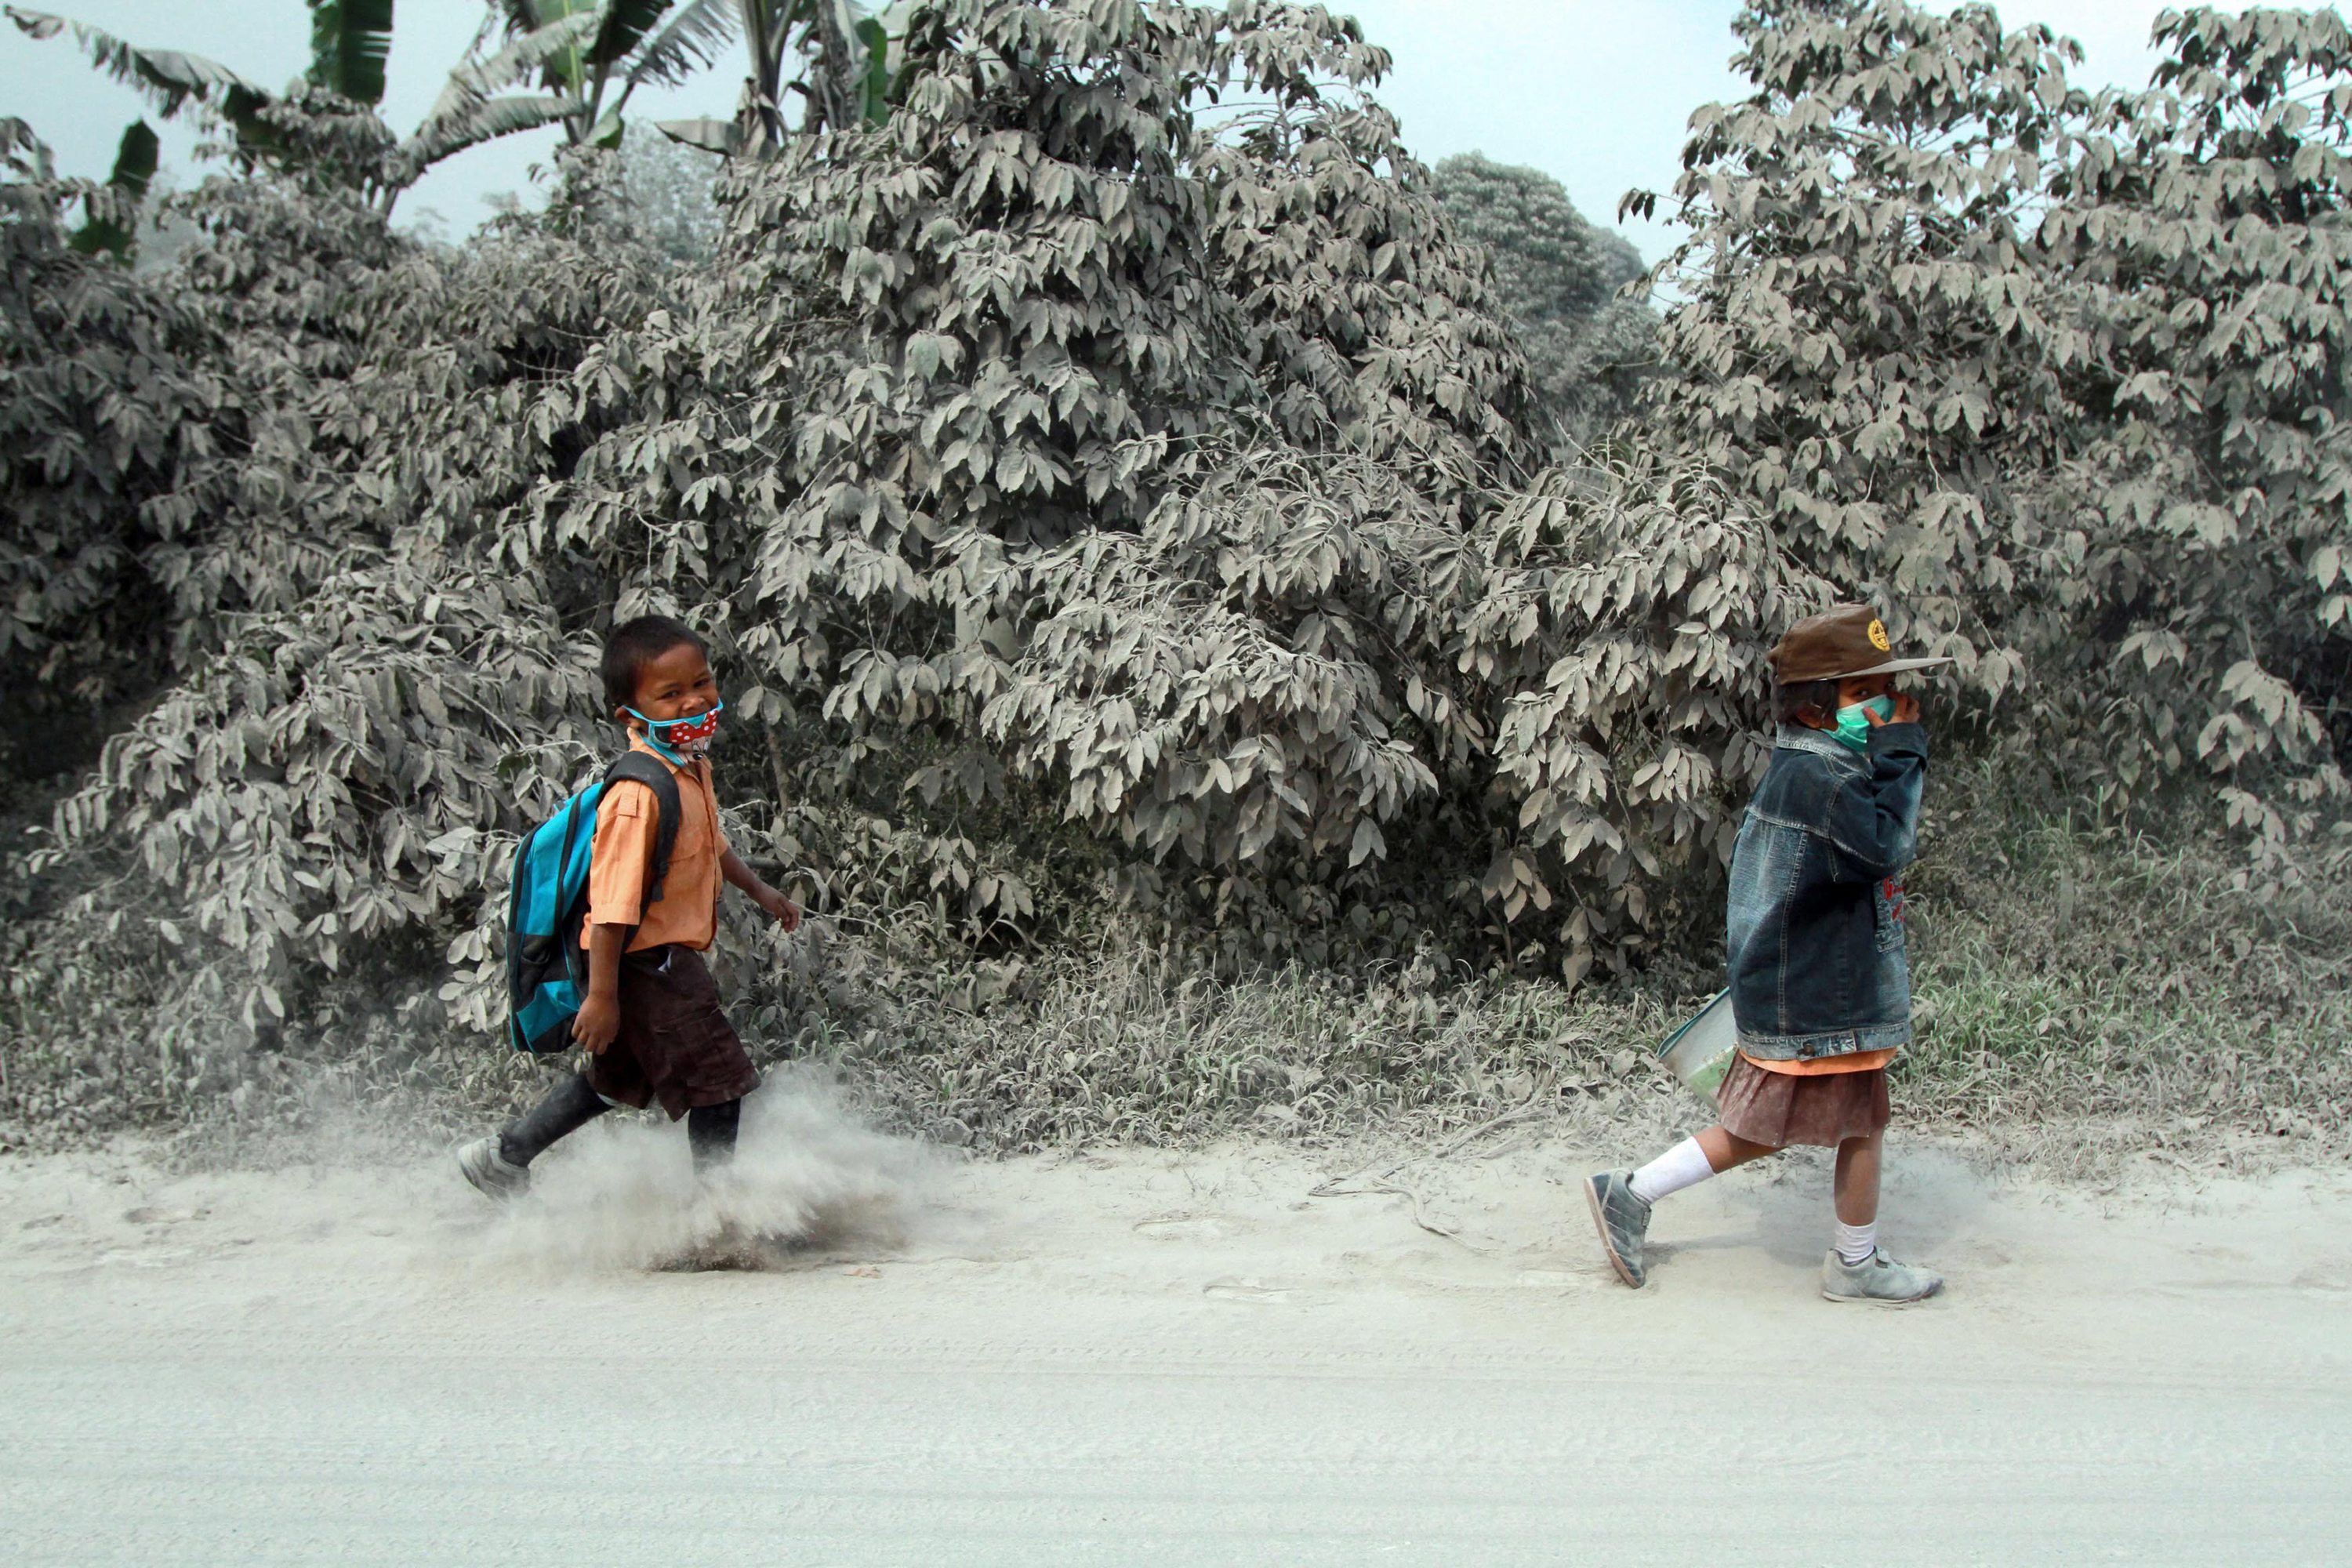 Indonesian students walk on a street covered in Mount Sinabung volcanic ash in Sukandebi village, North Sumatra, Indonesia, on Oct. 10, 2014.